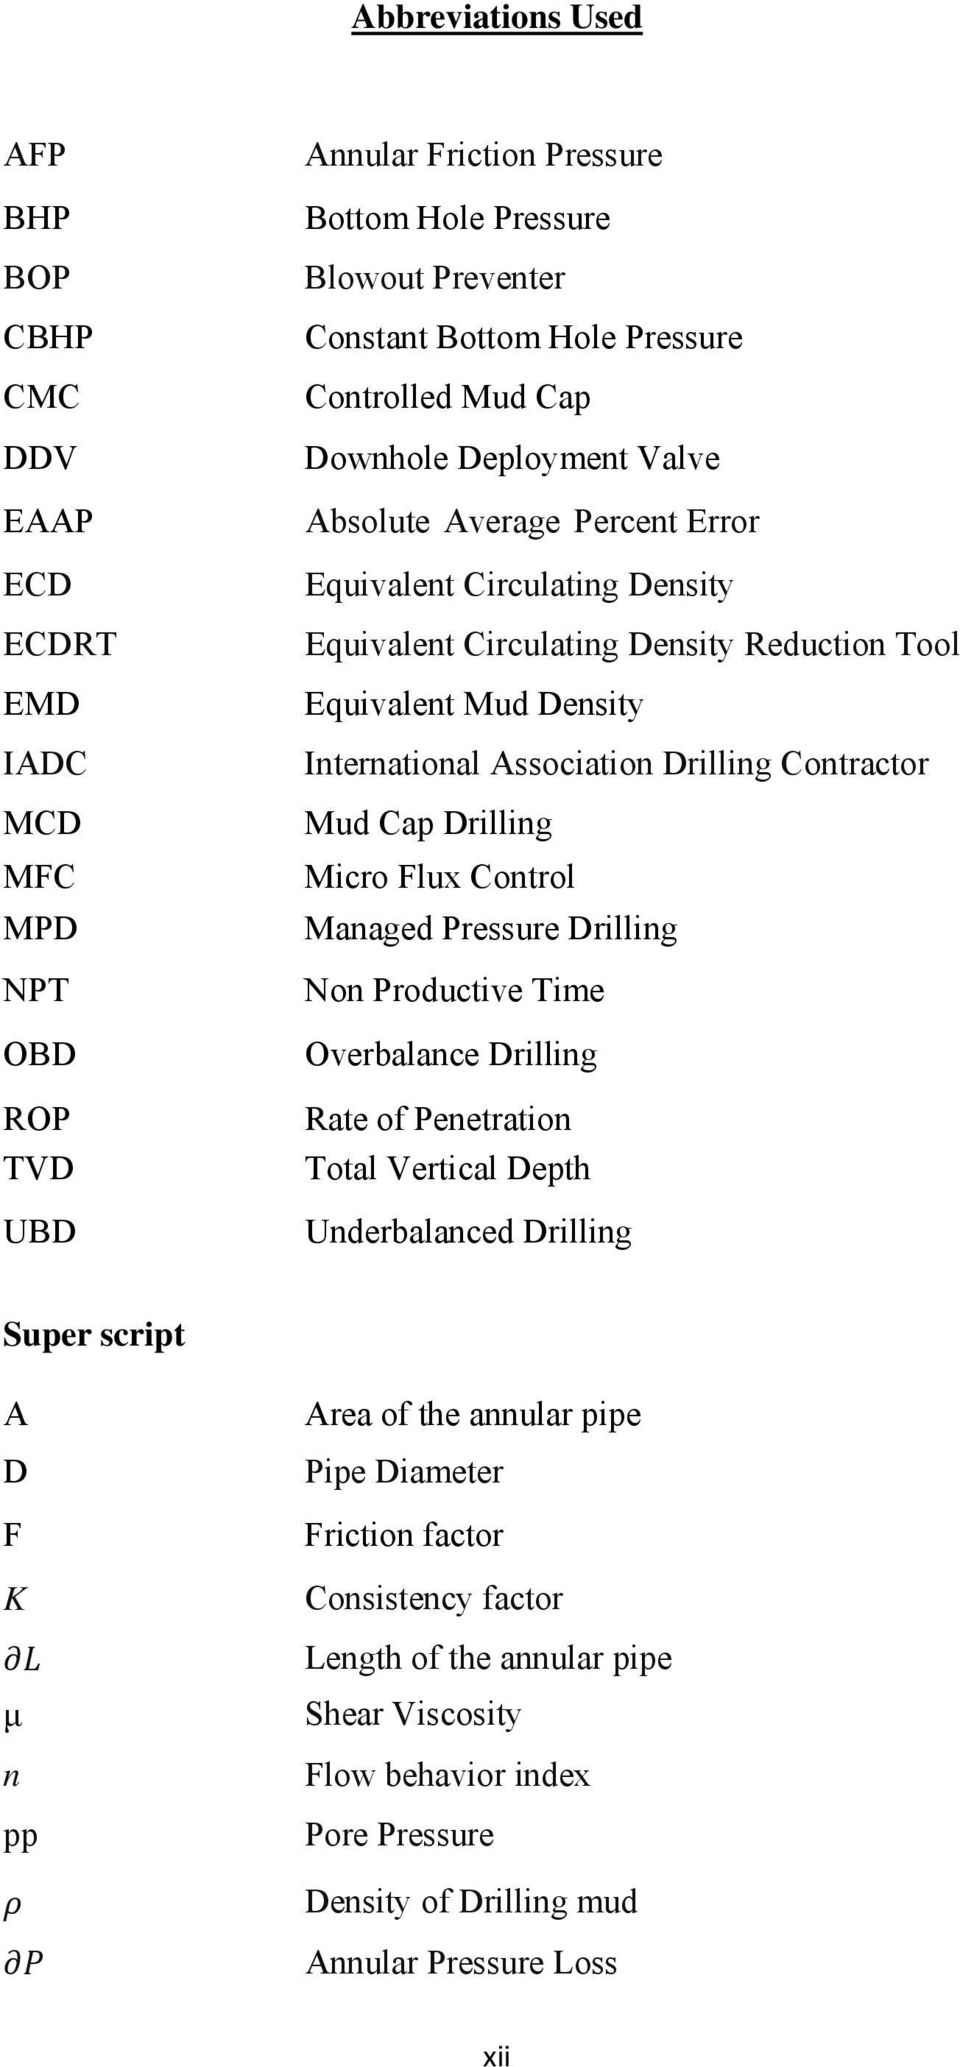 Association Drilling Contractor Mud Cap Drilling Micro Flux Control Managed Pressure Drilling Non Productive Time Overbalance Drilling Rate of Penetration Total Vertical Depth Underbalanced Drilling